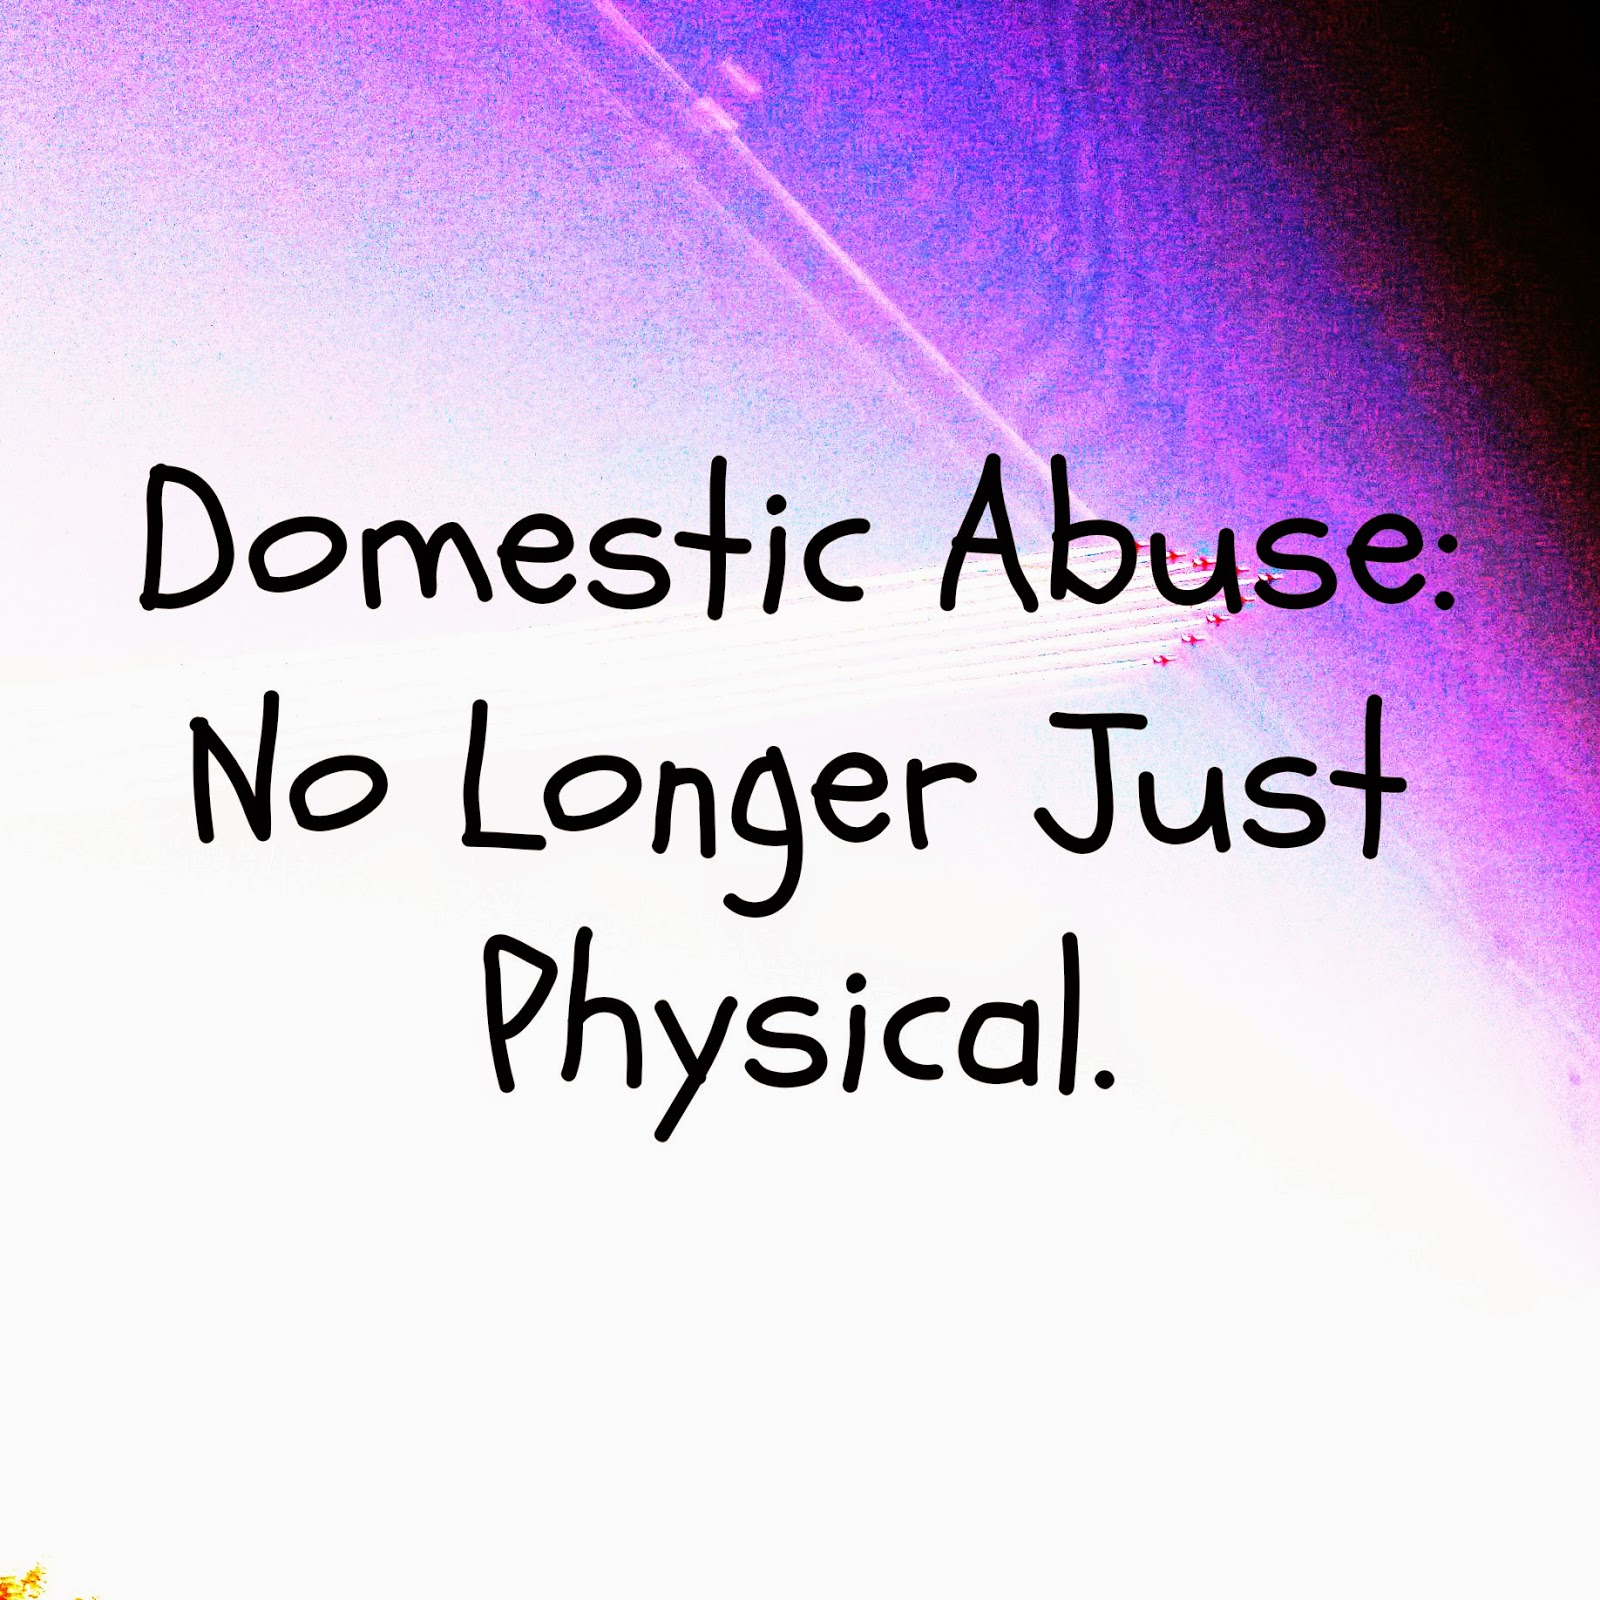 domestic abuse no longer just physical